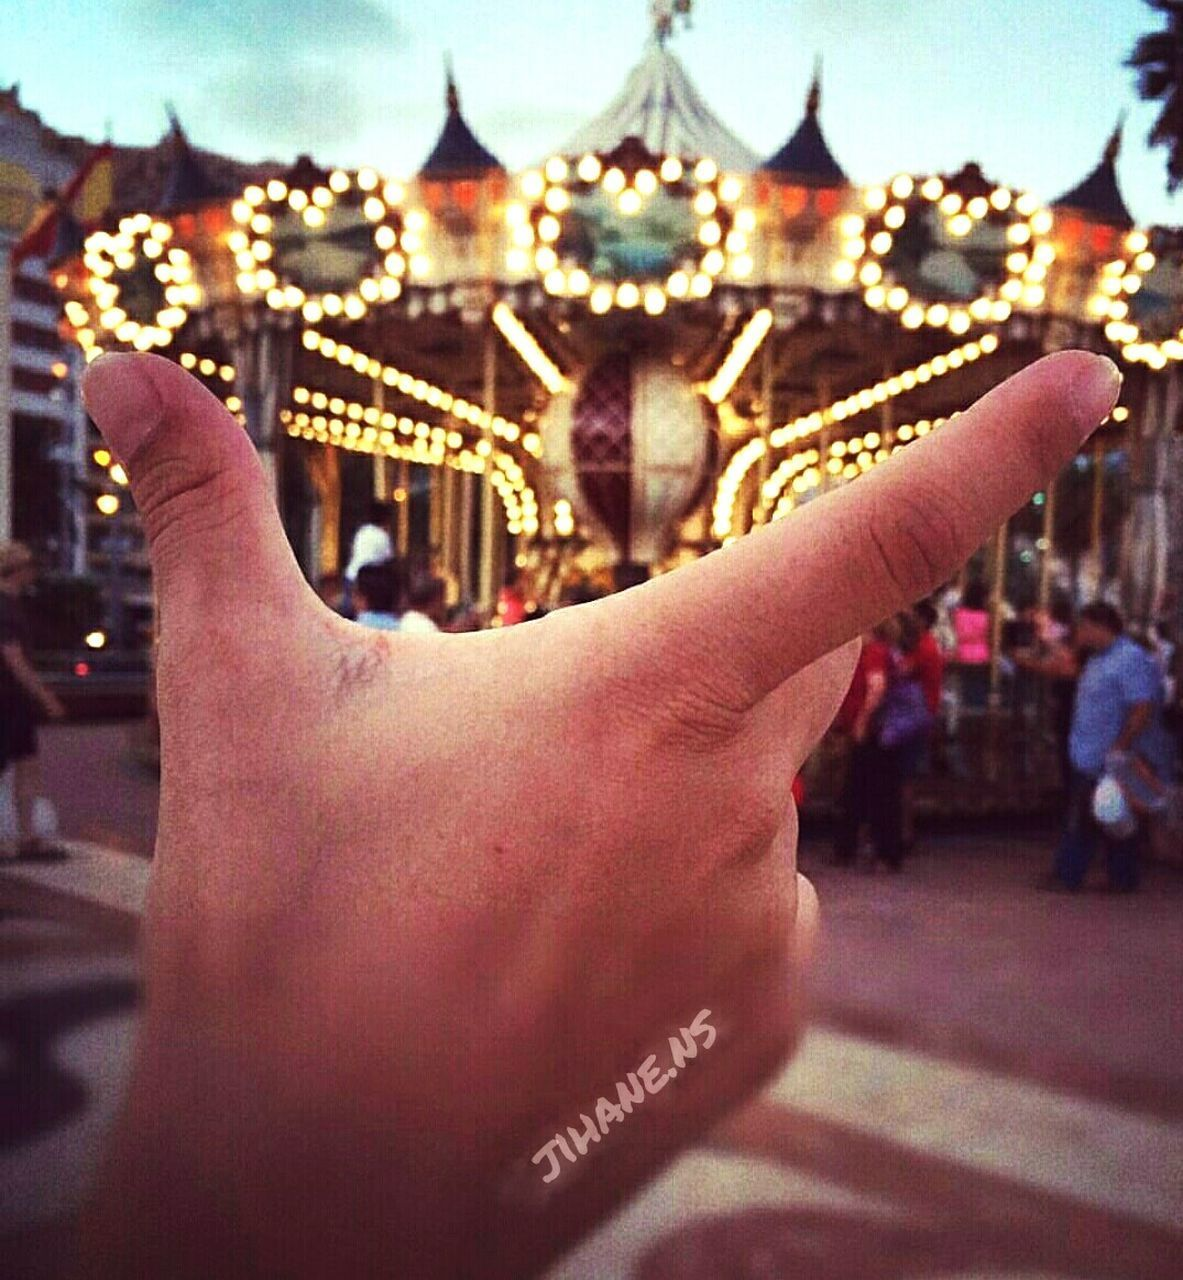 human hand, real people, human body part, human finger, focus on foreground, one person, personal perspective, outdoors, leisure activity, close-up, holding, lifestyles, men, illuminated, women, day, carousel, adult, people